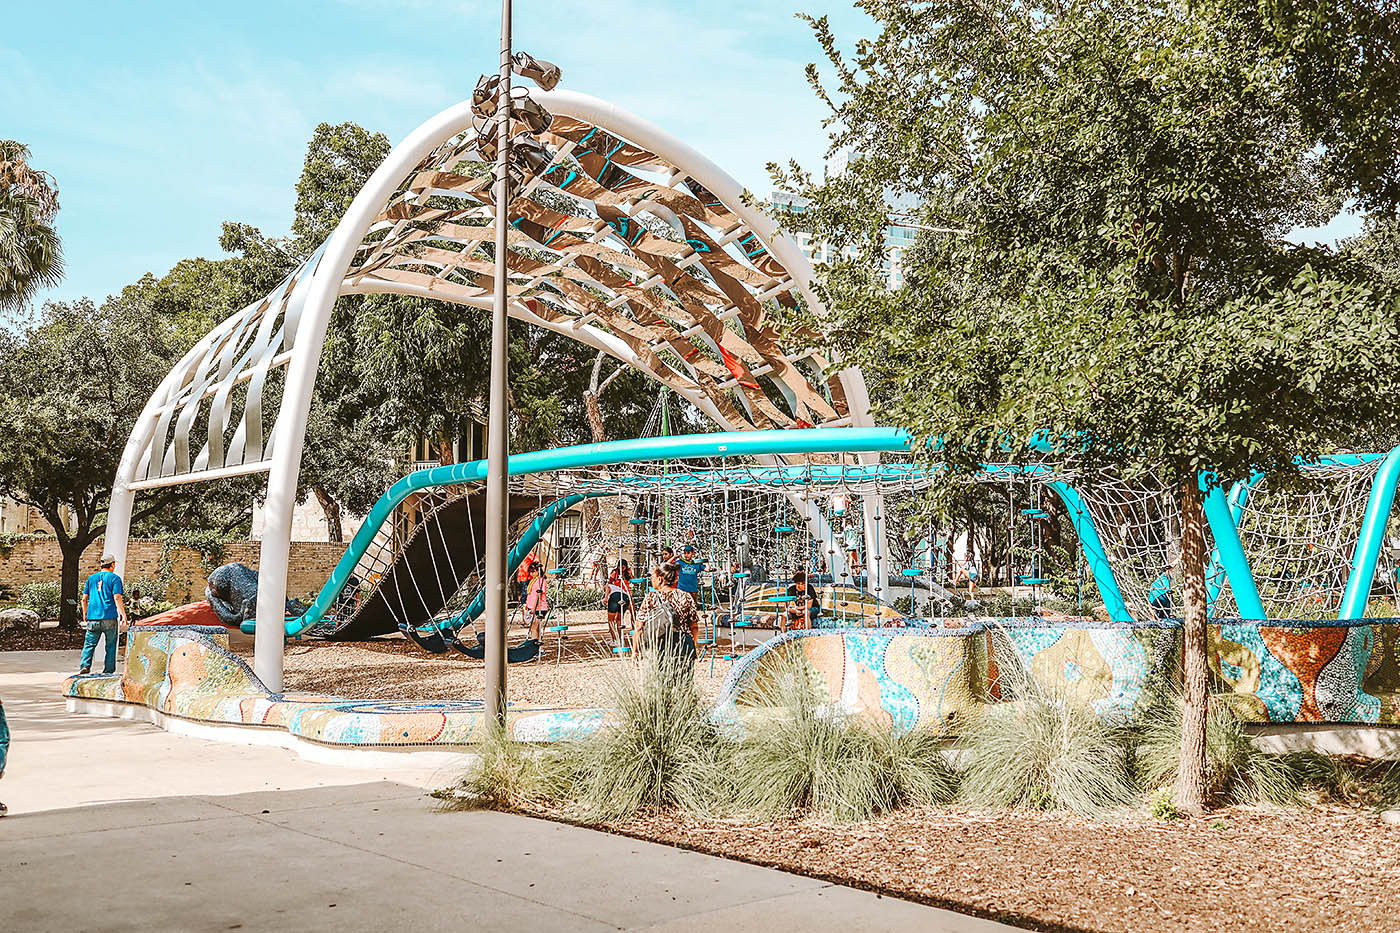 Play structure at park in San Antonio